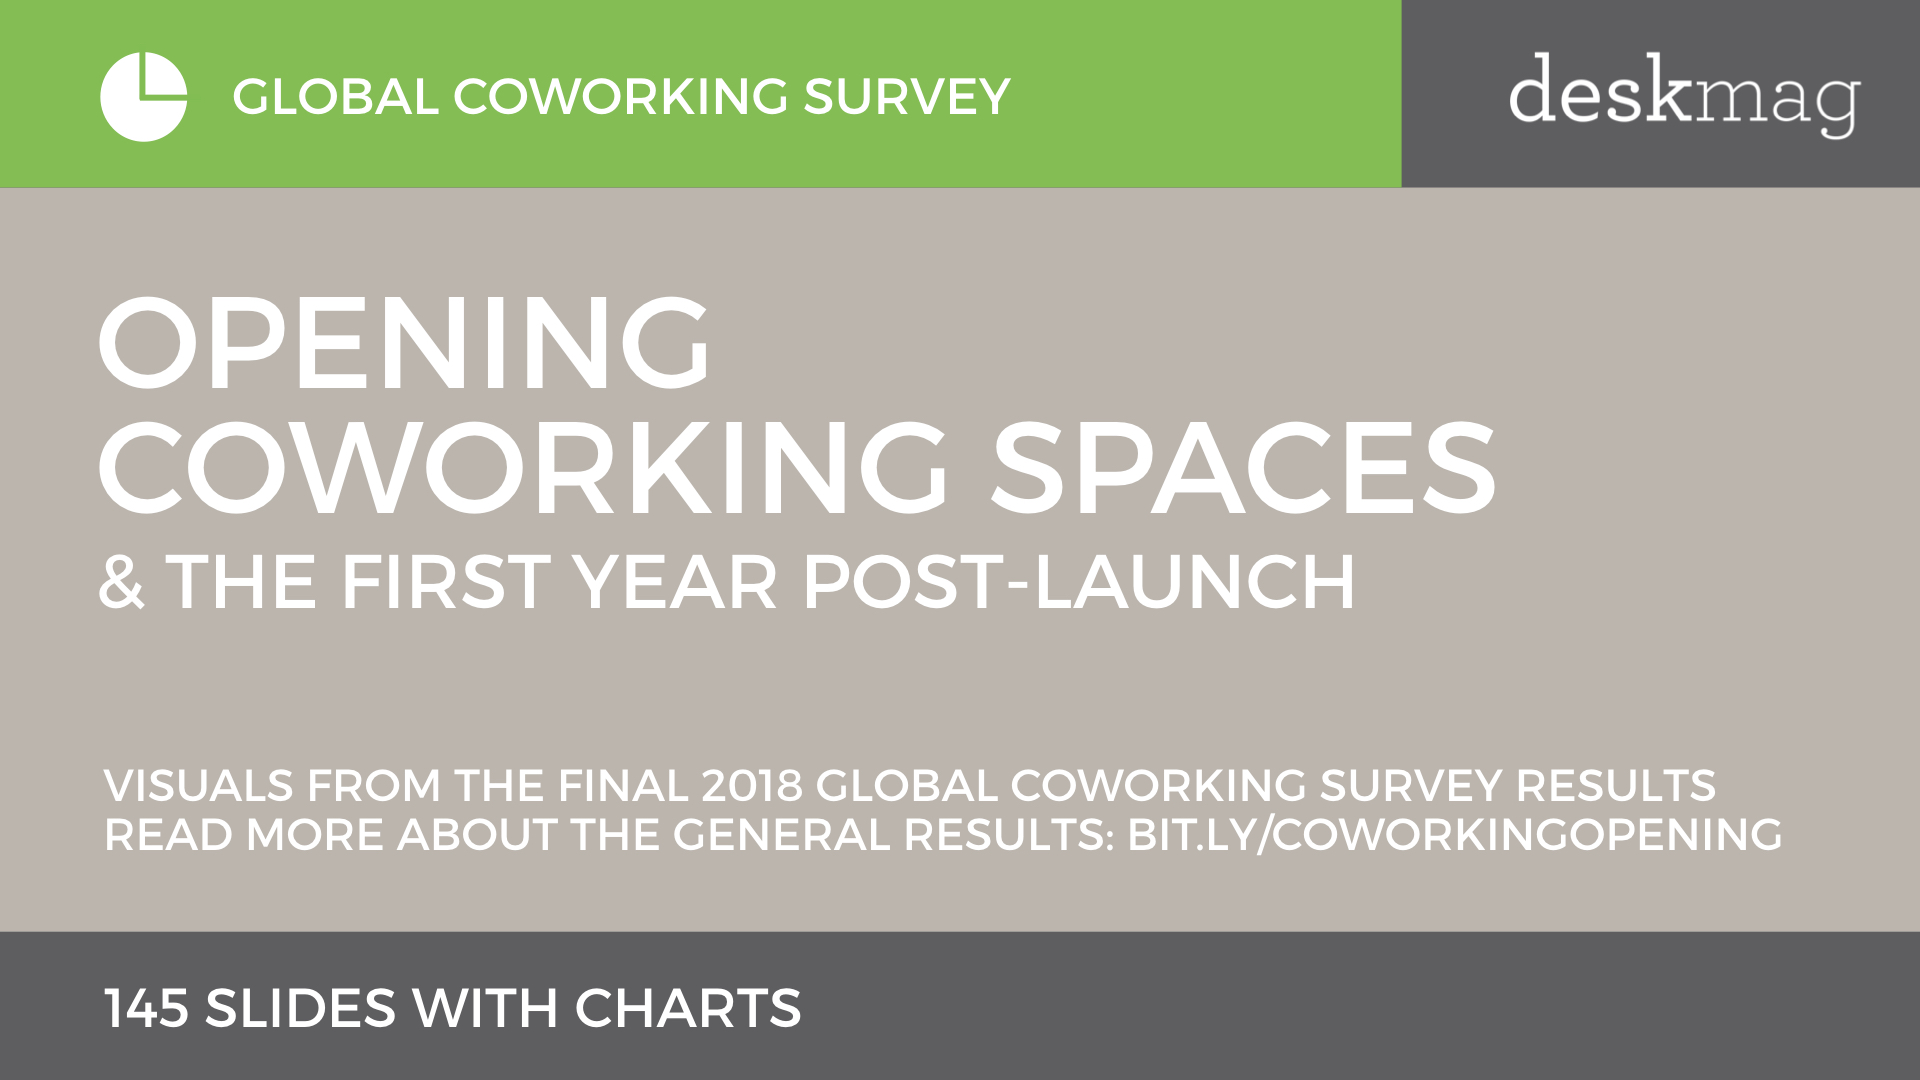 2018 GCS - OPENING COWORKING SPACES.001.jpeg